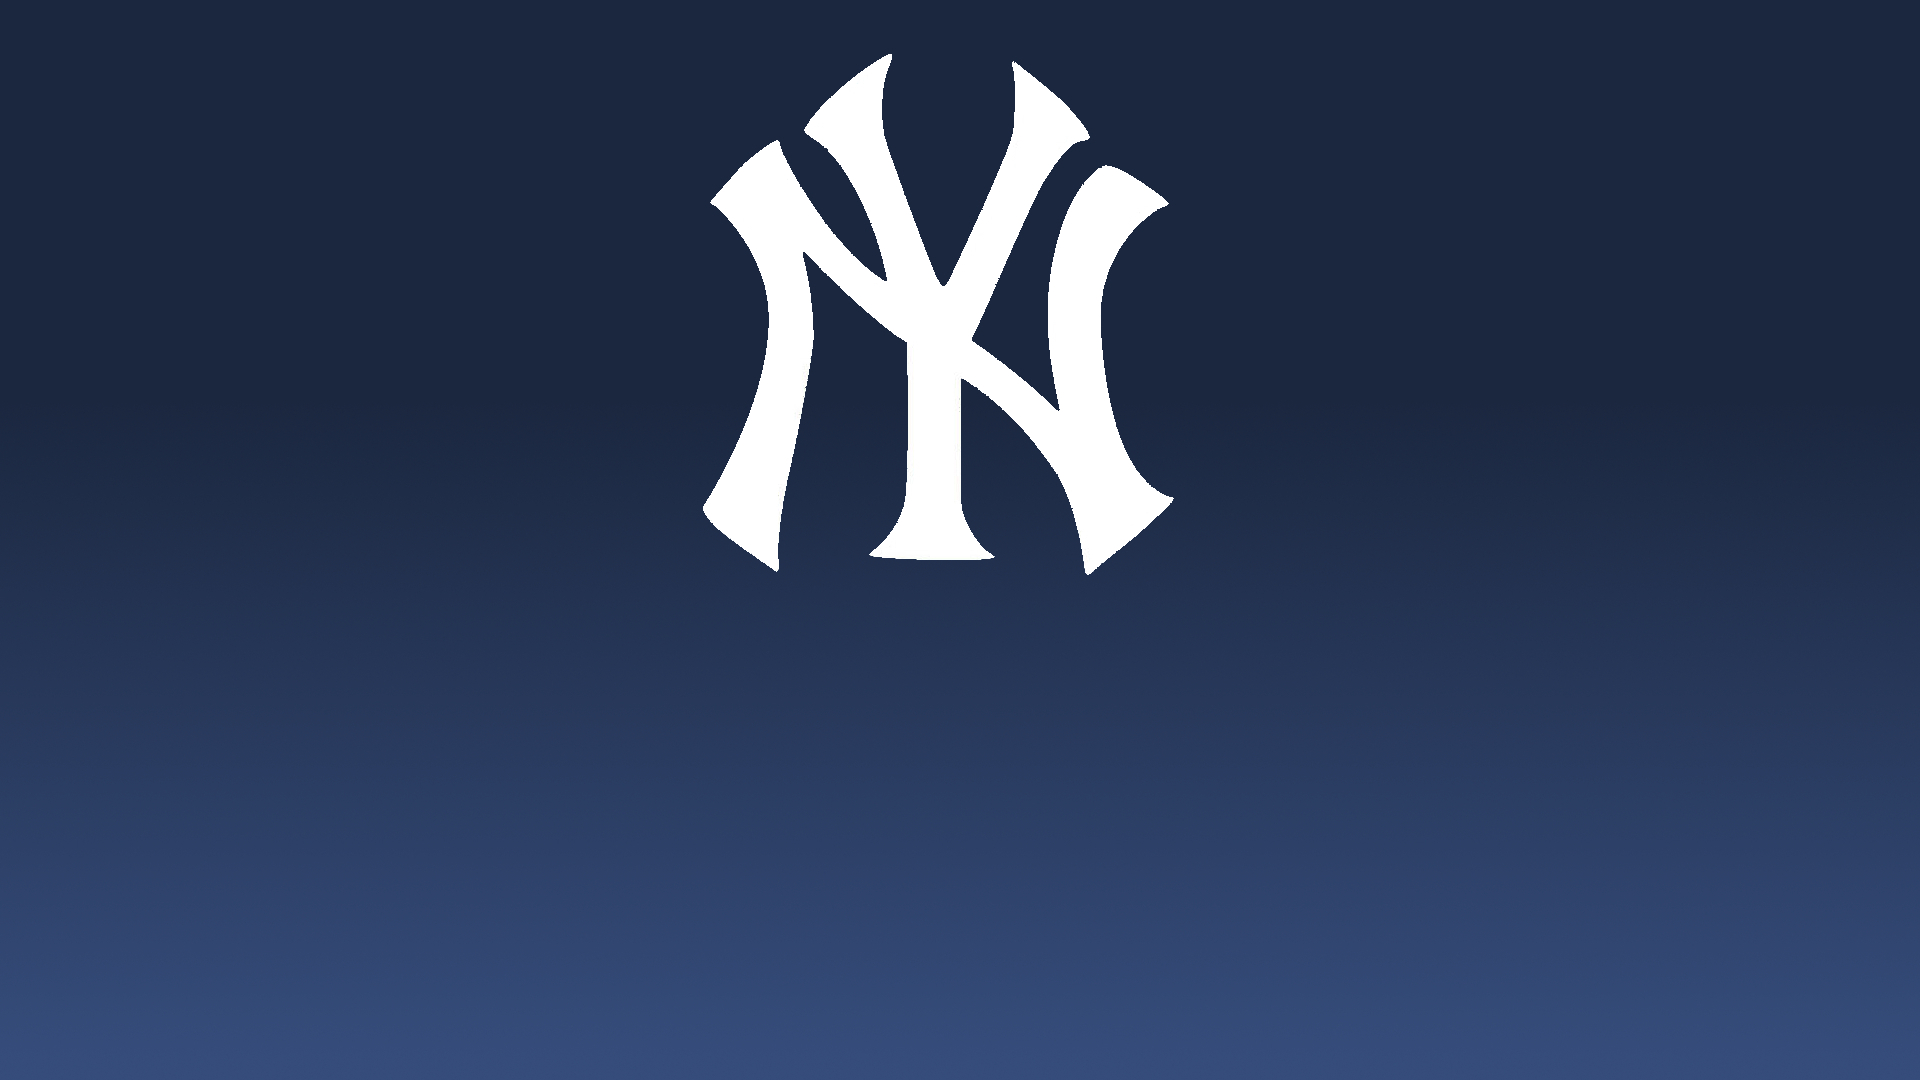 New York Yankees Submitted by Waggly Bean